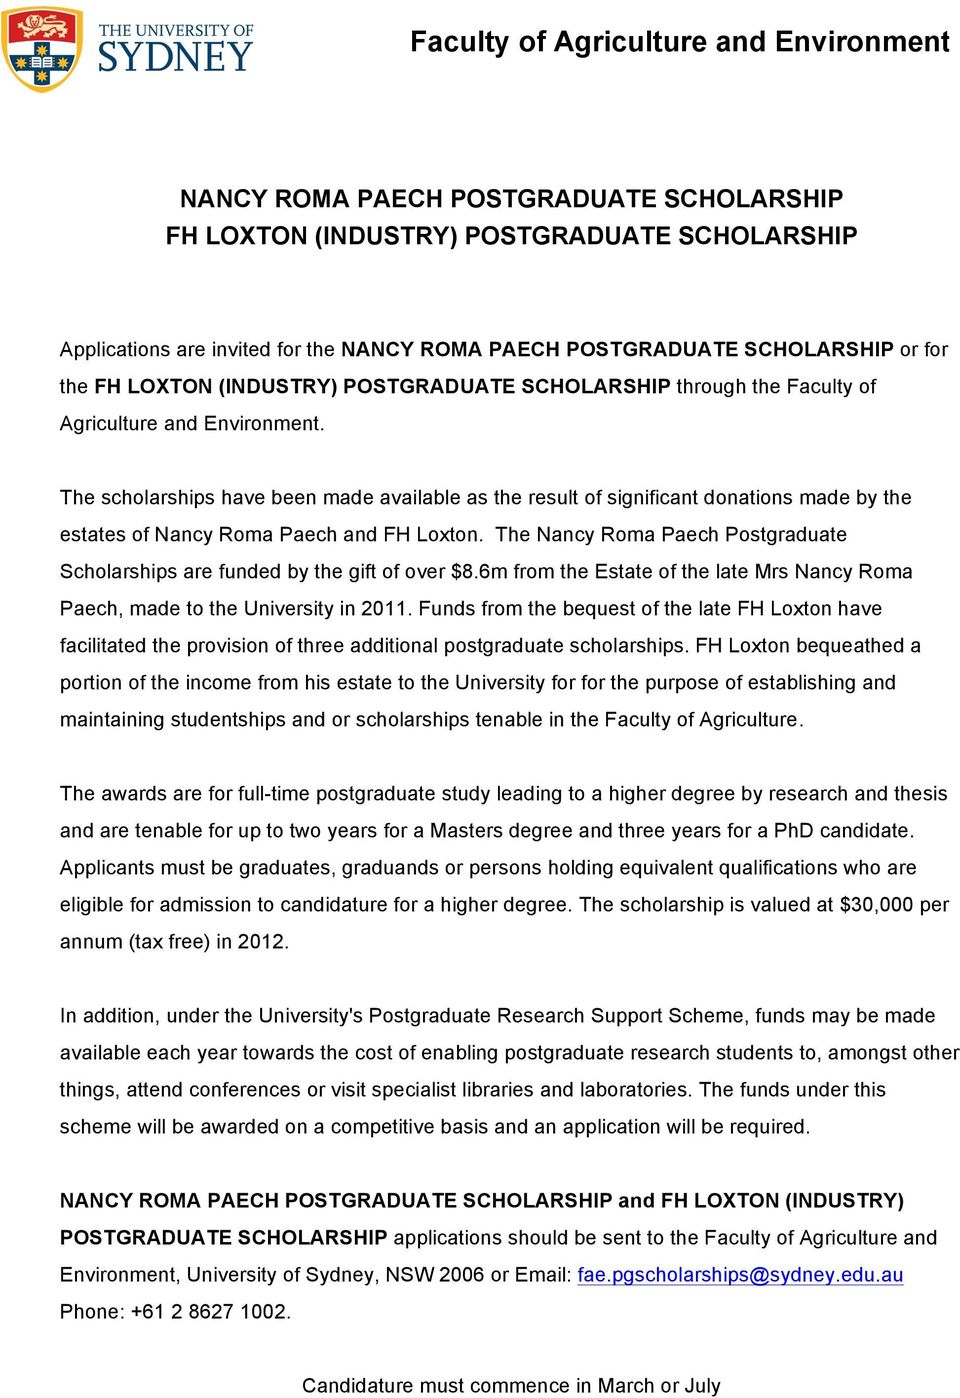 The scholarships have been made available as the result of significant donations made by the estates of Nancy Roma Paech and FH Loxton.